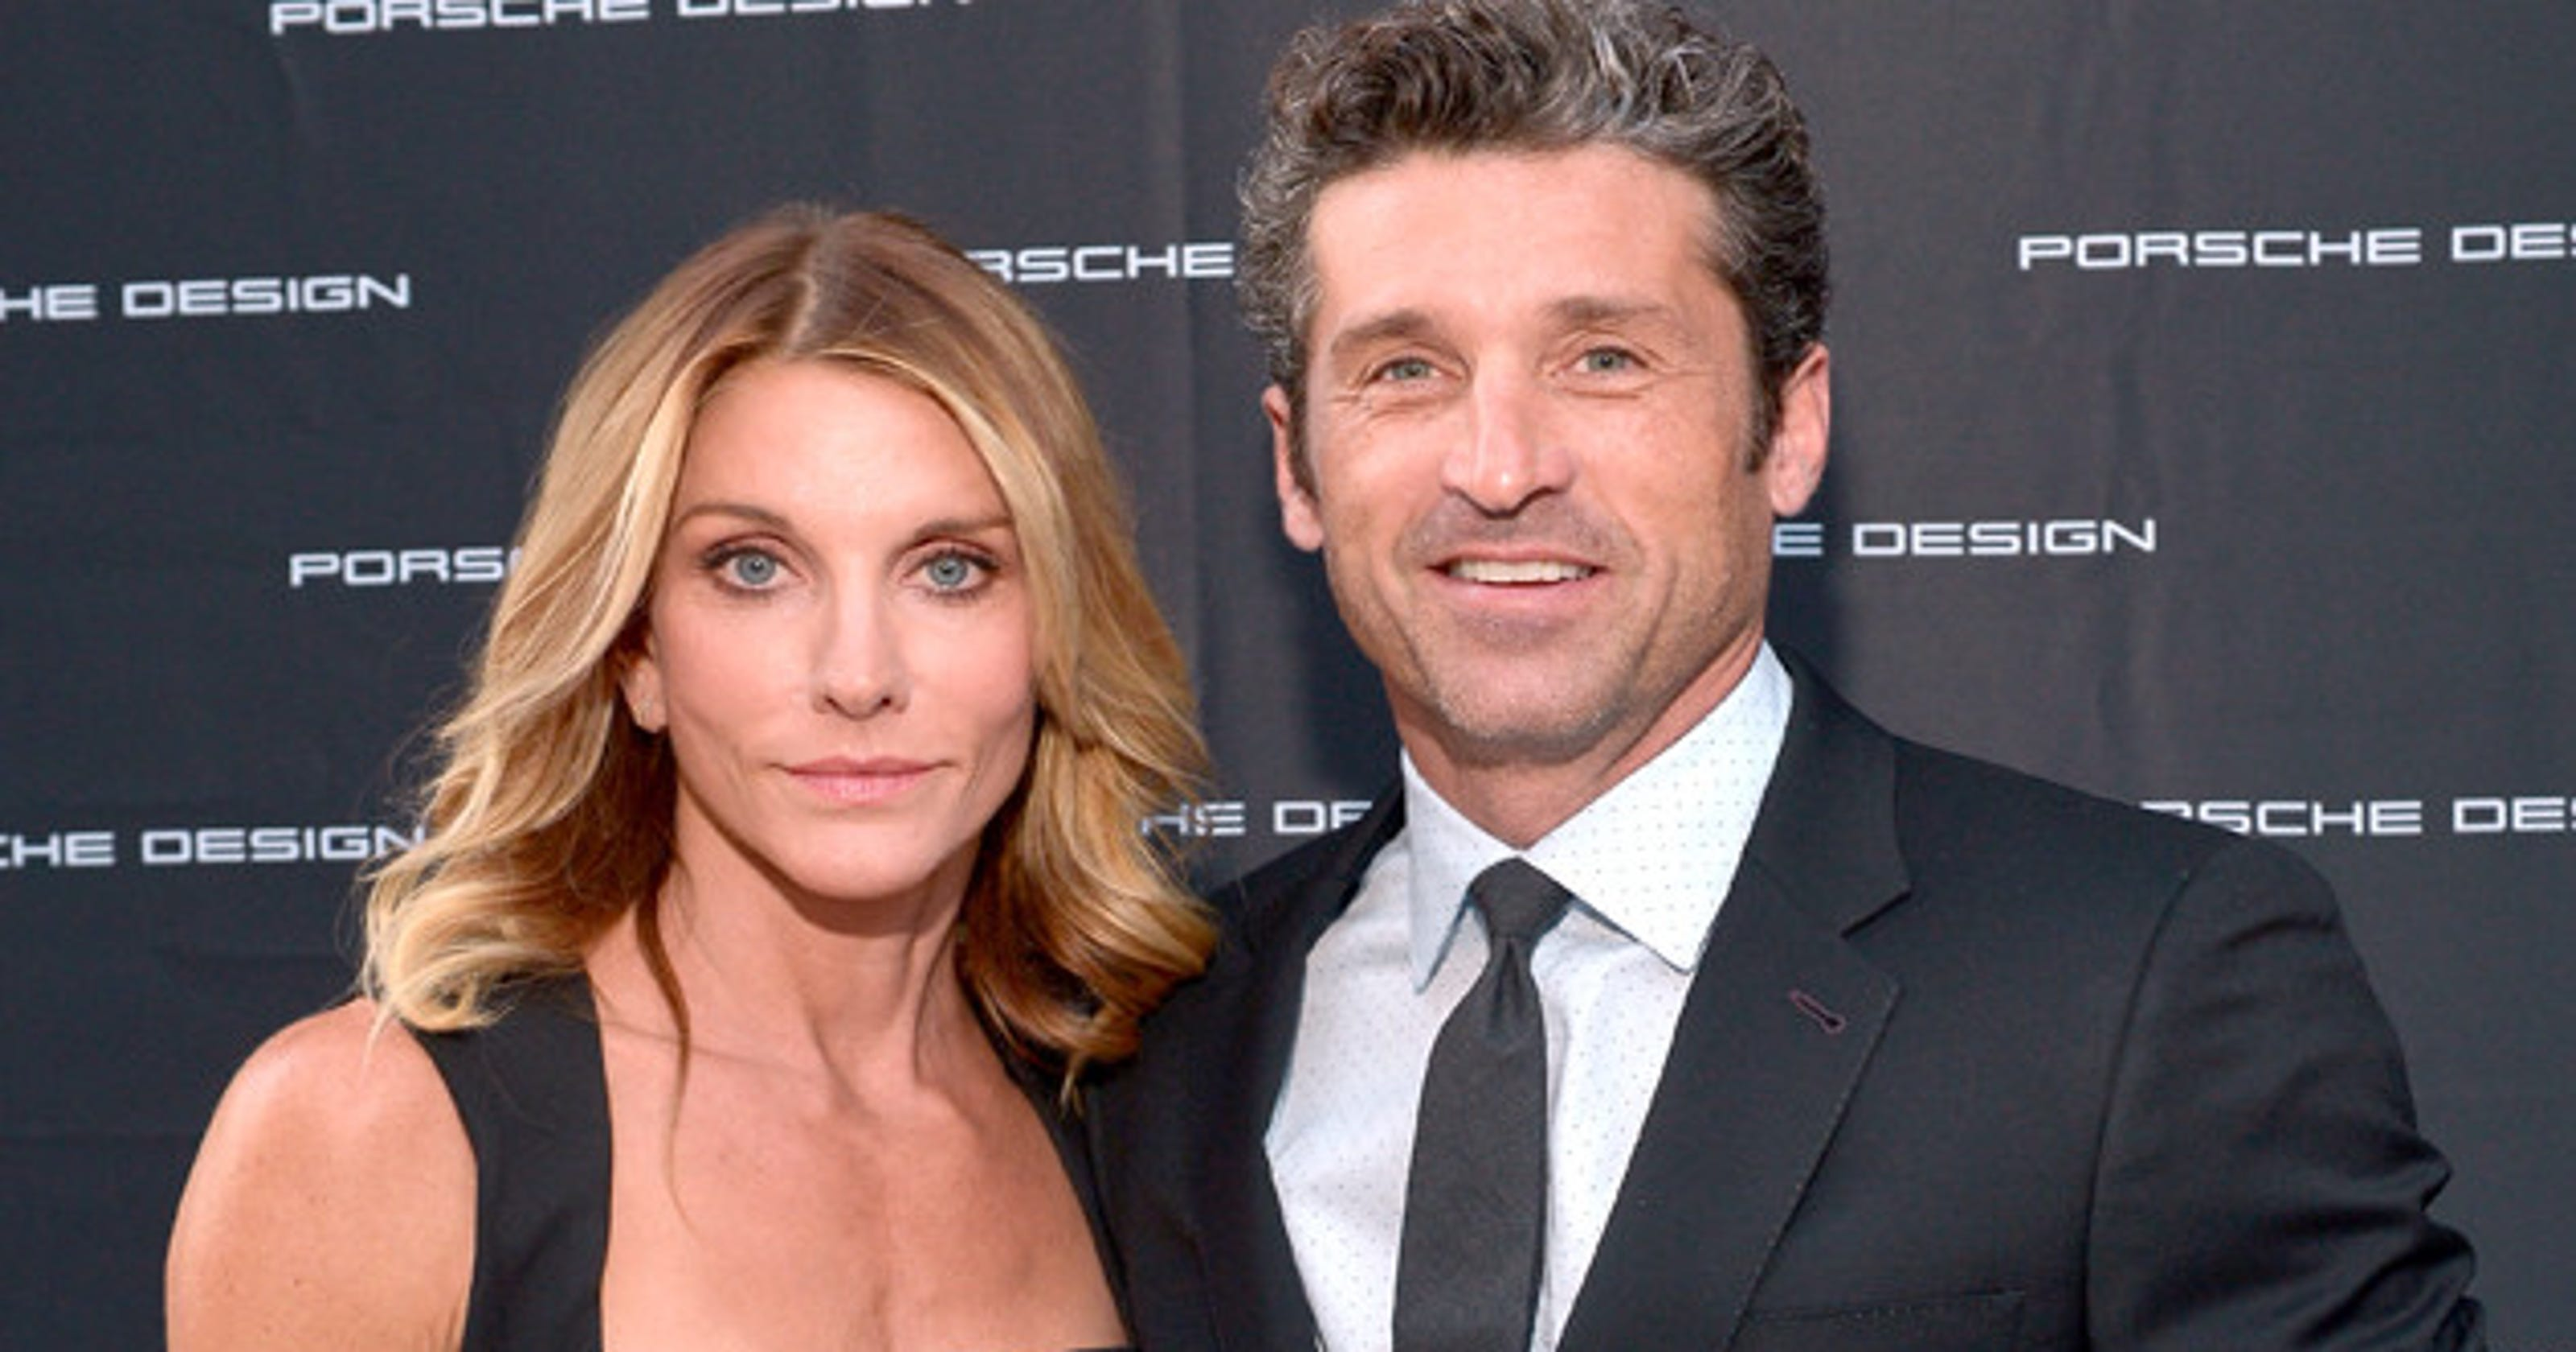 Patrick Dempsey Wife File For Divorce